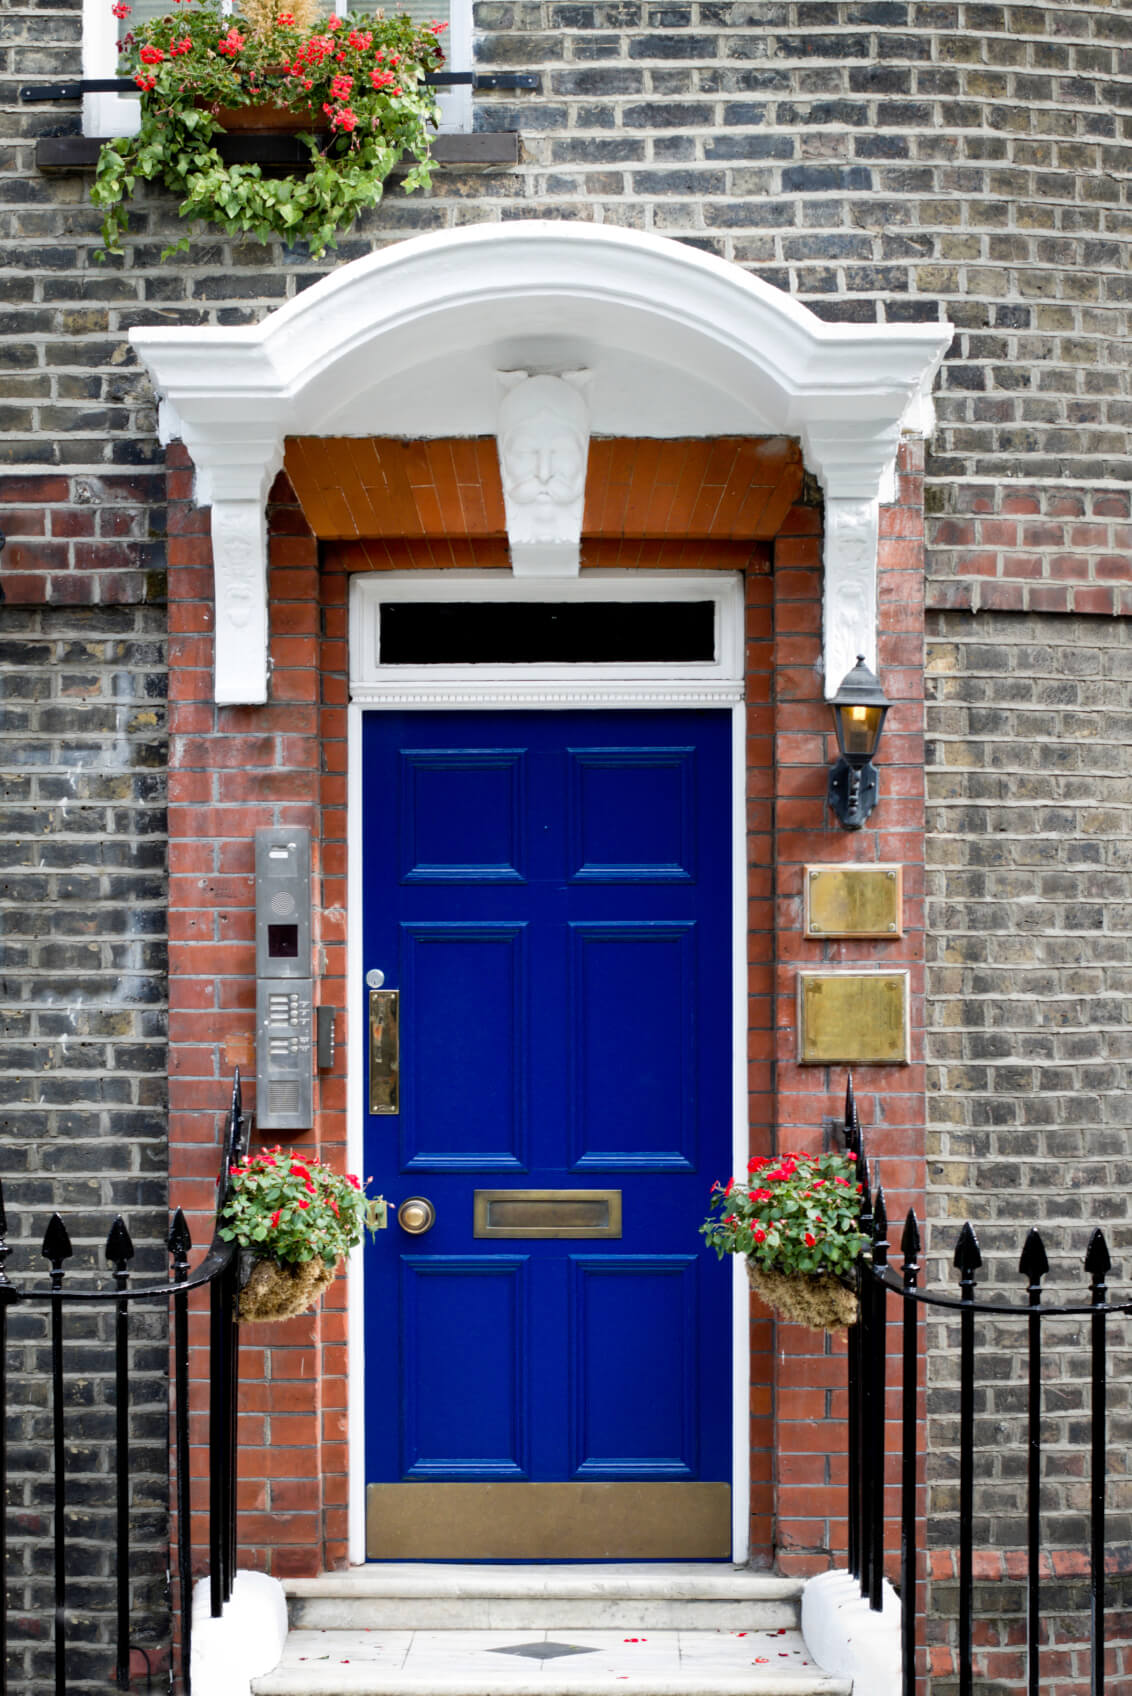 The facade of this home is made out of red brick. The doorway has red brick molding as well, with a white Roman style arch above it. It has a royal blue front door. The front door features a brass knob, door handle, a mail slot, a lock, a peephole, and a kick plate below. Also installed by the door is a door lamp, an intercom entry system, and two empty brass plates attached on the brick molding. It has a concrete doorstep with black steel fences and a couple of hanging plants.